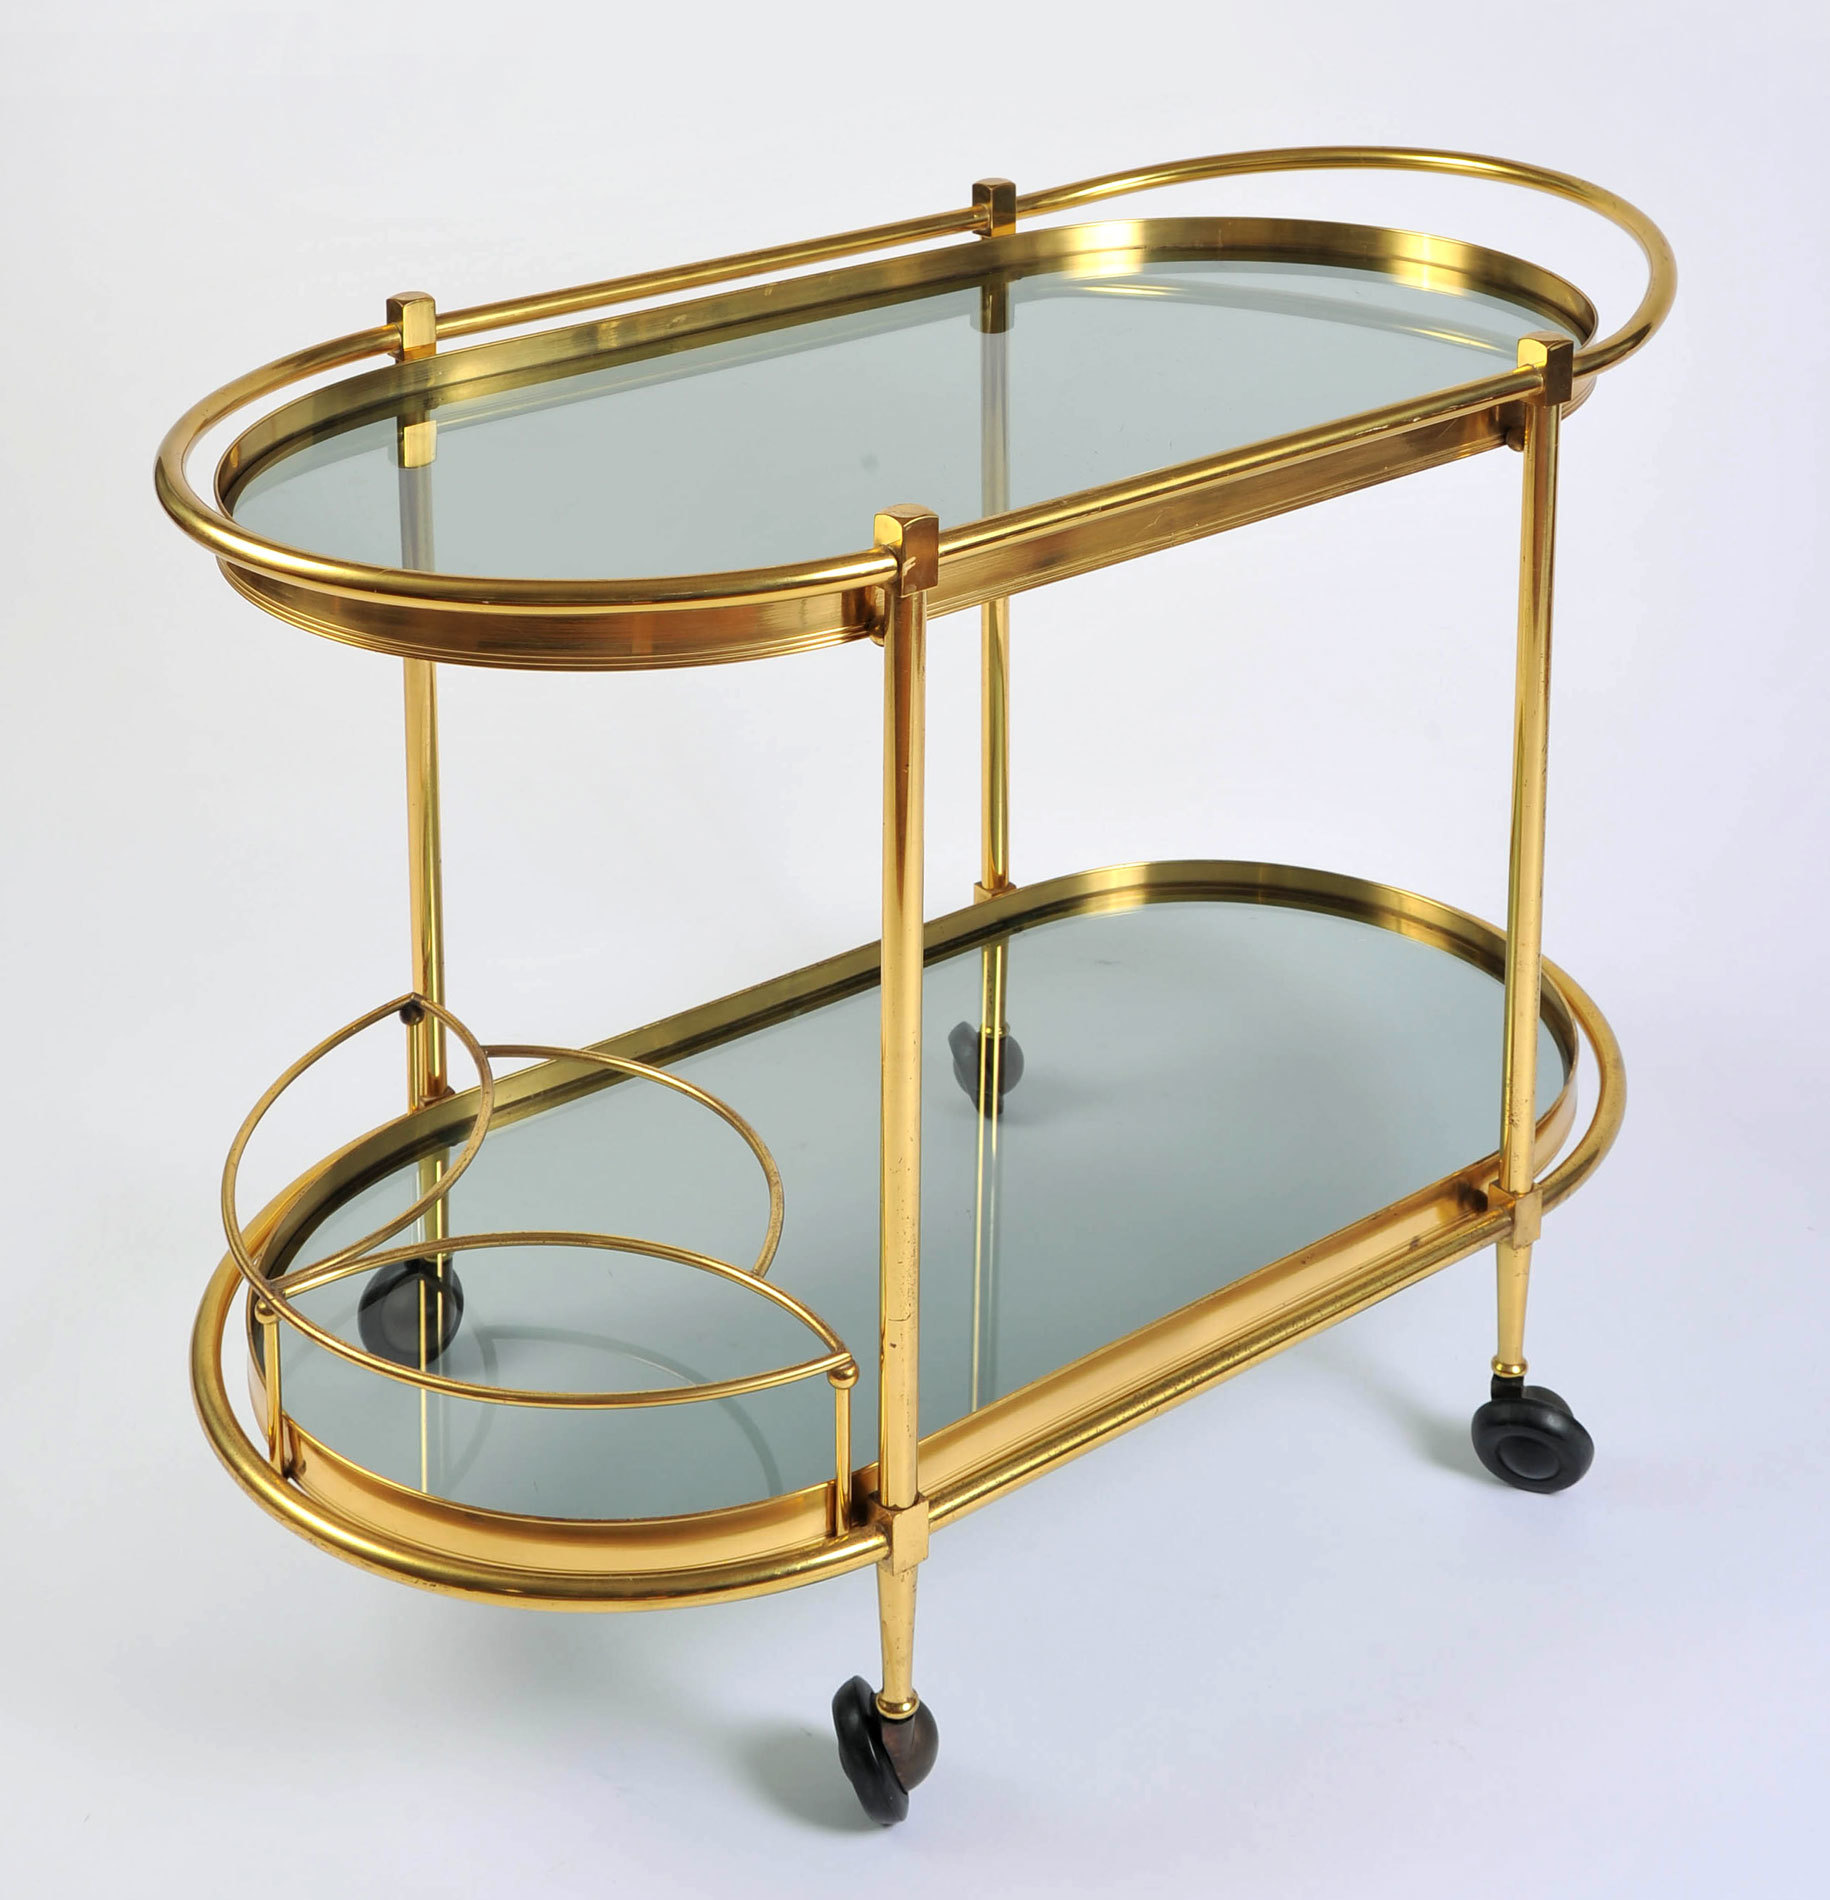 Brass Trolley Smoked Glass 02